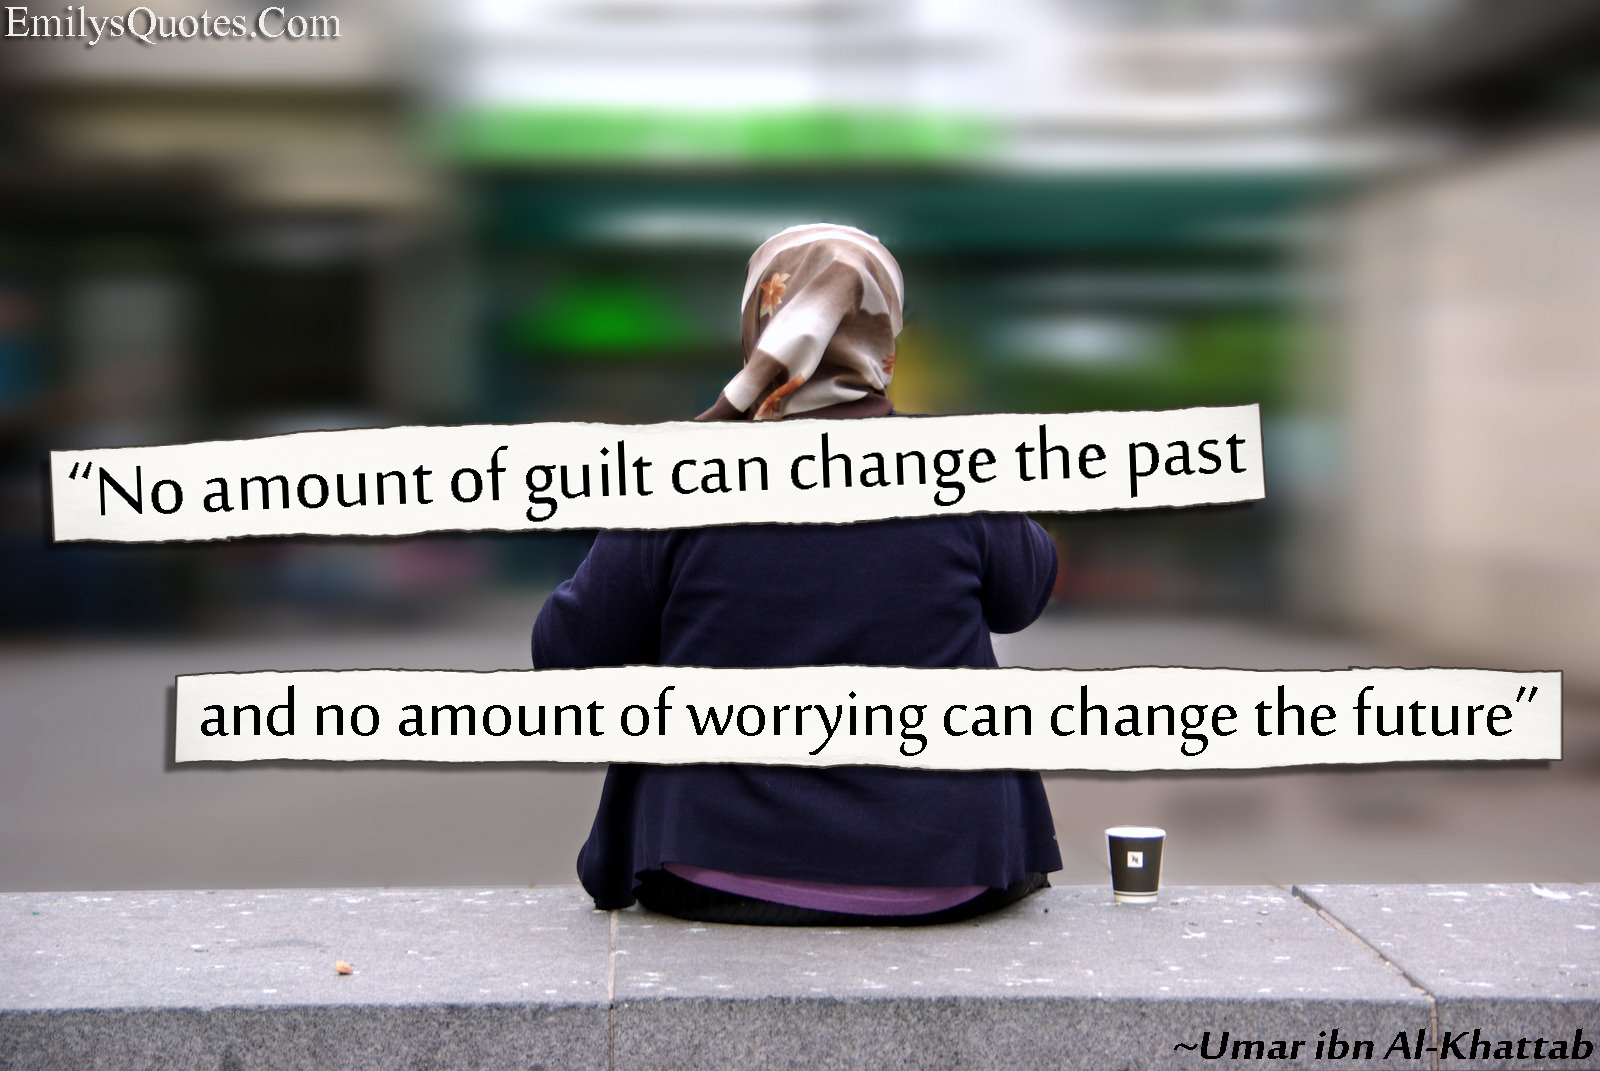 EmilysQuotes.Com - guilt, change, past, worrying, future, Umar ibn Al-Khattab, moving on, Umar ibn Al-Khattab